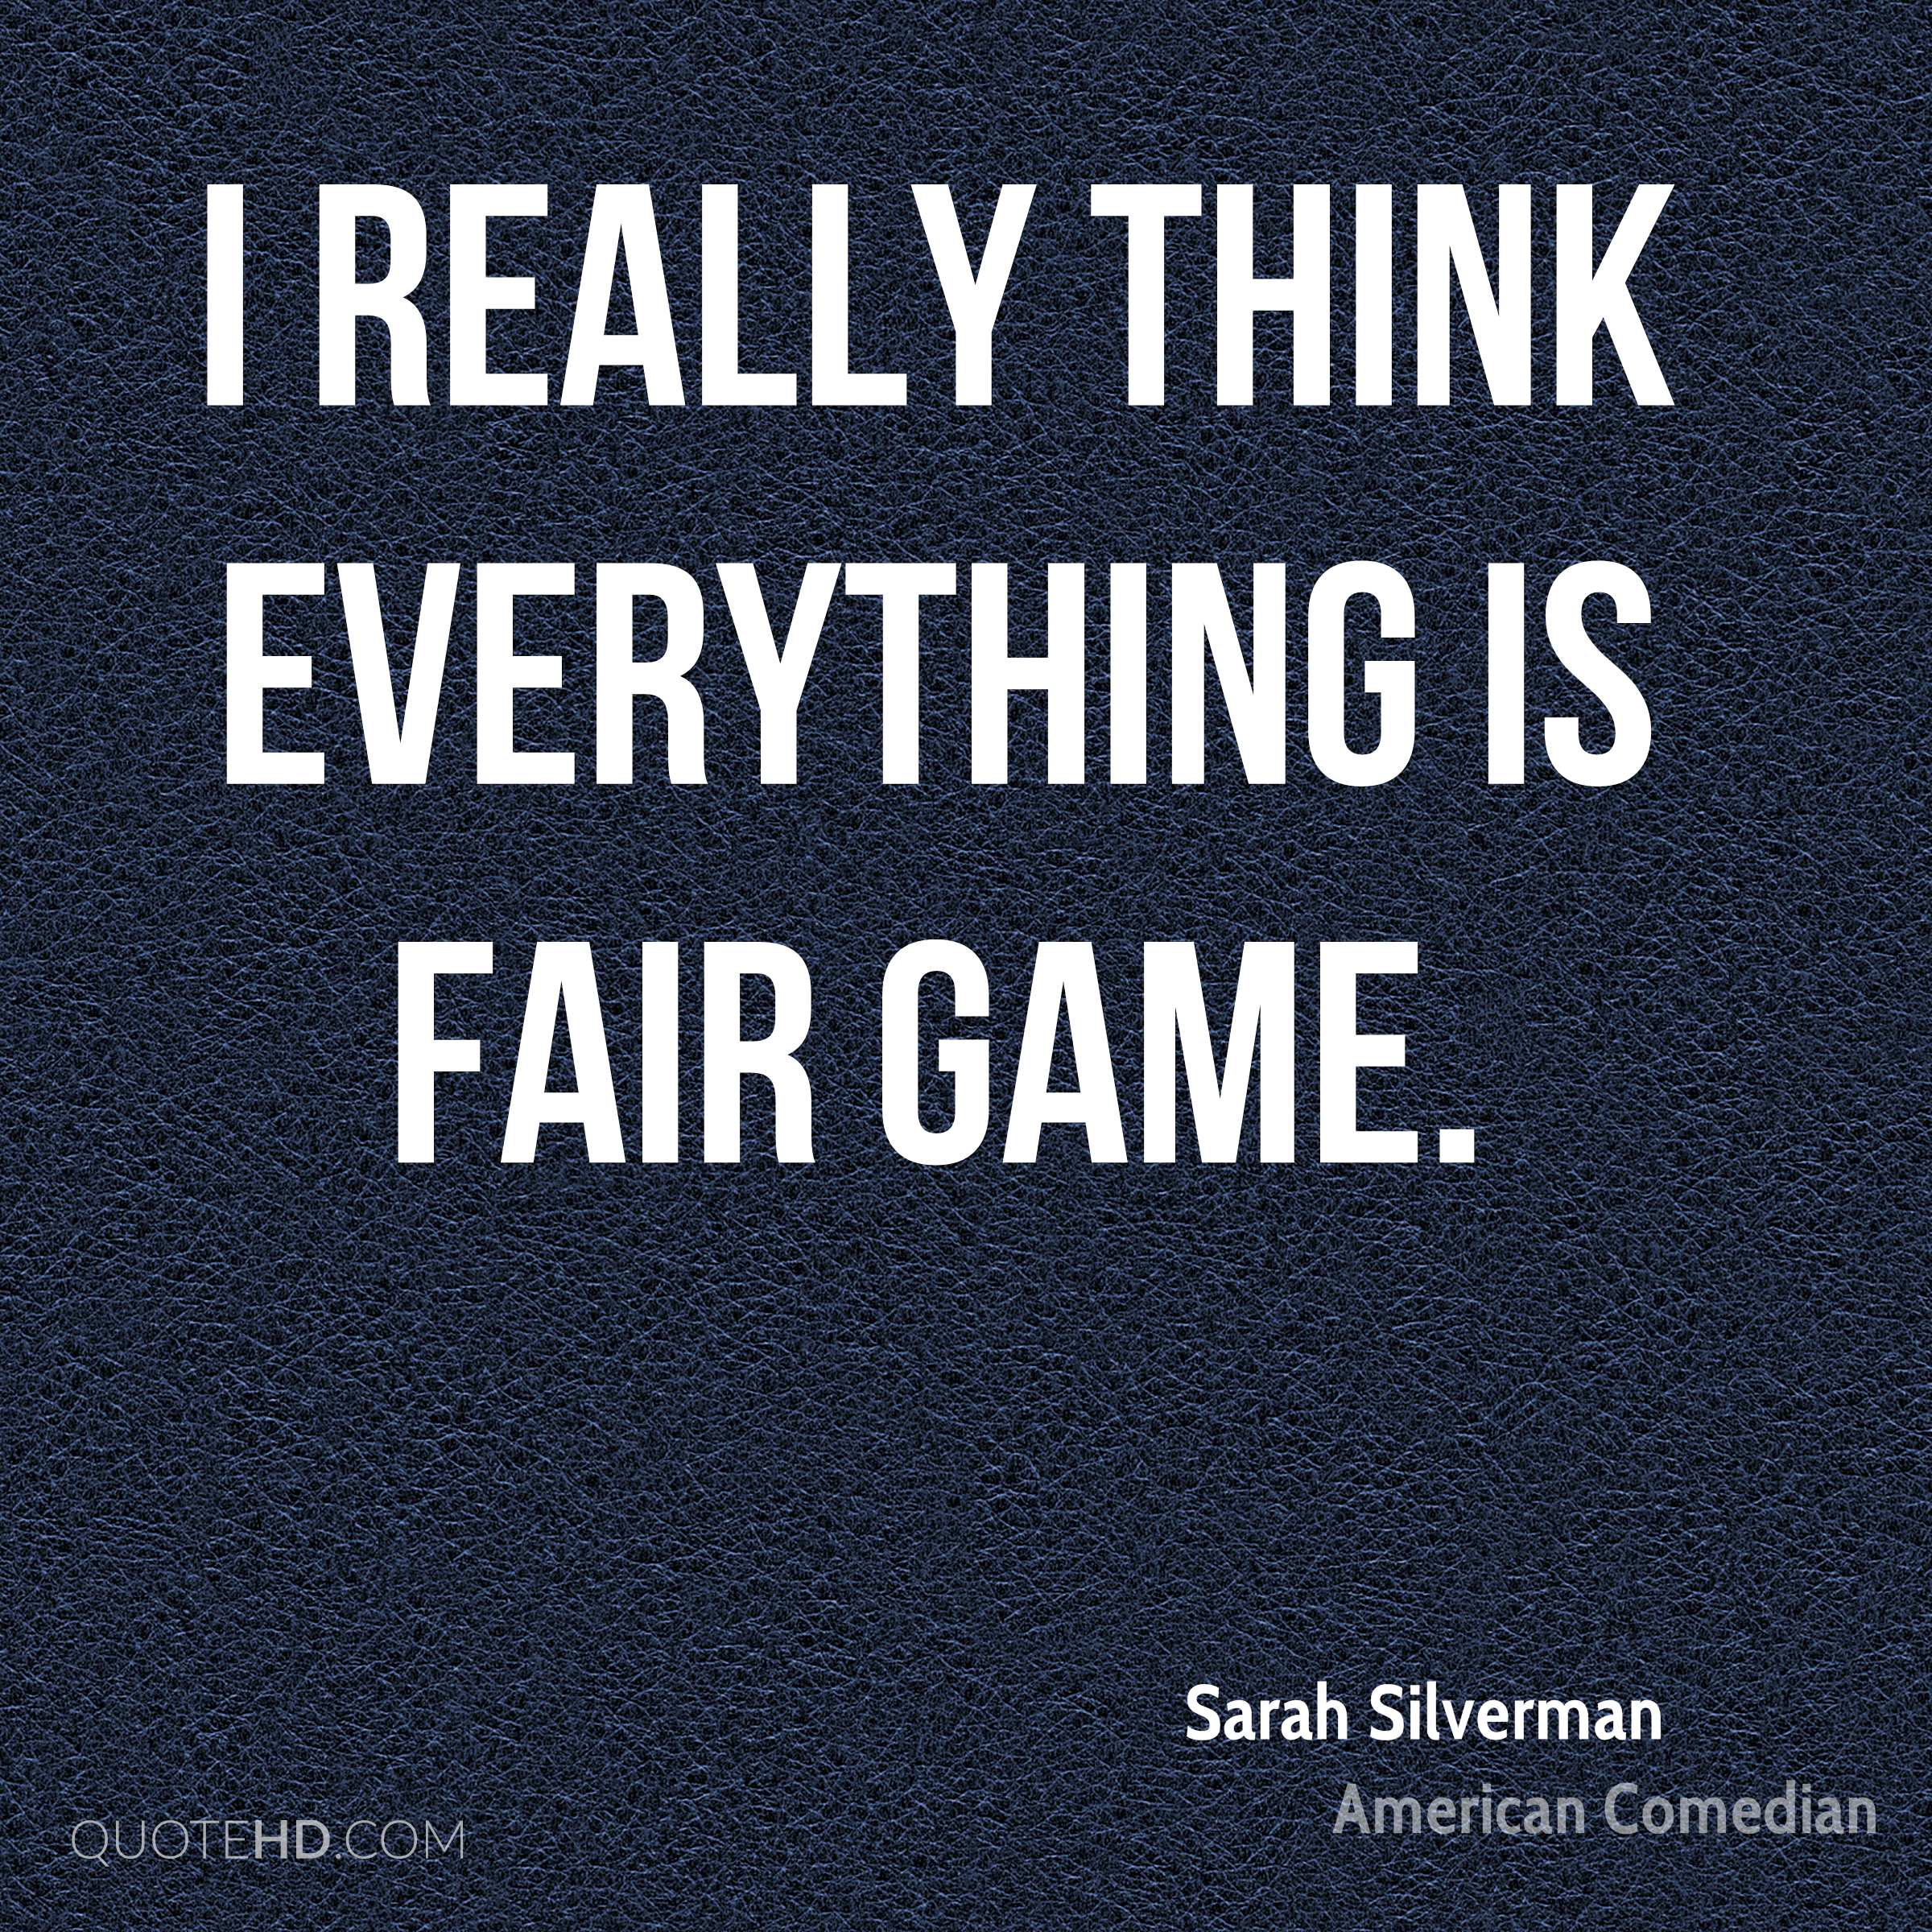 I really think everything is fair game.